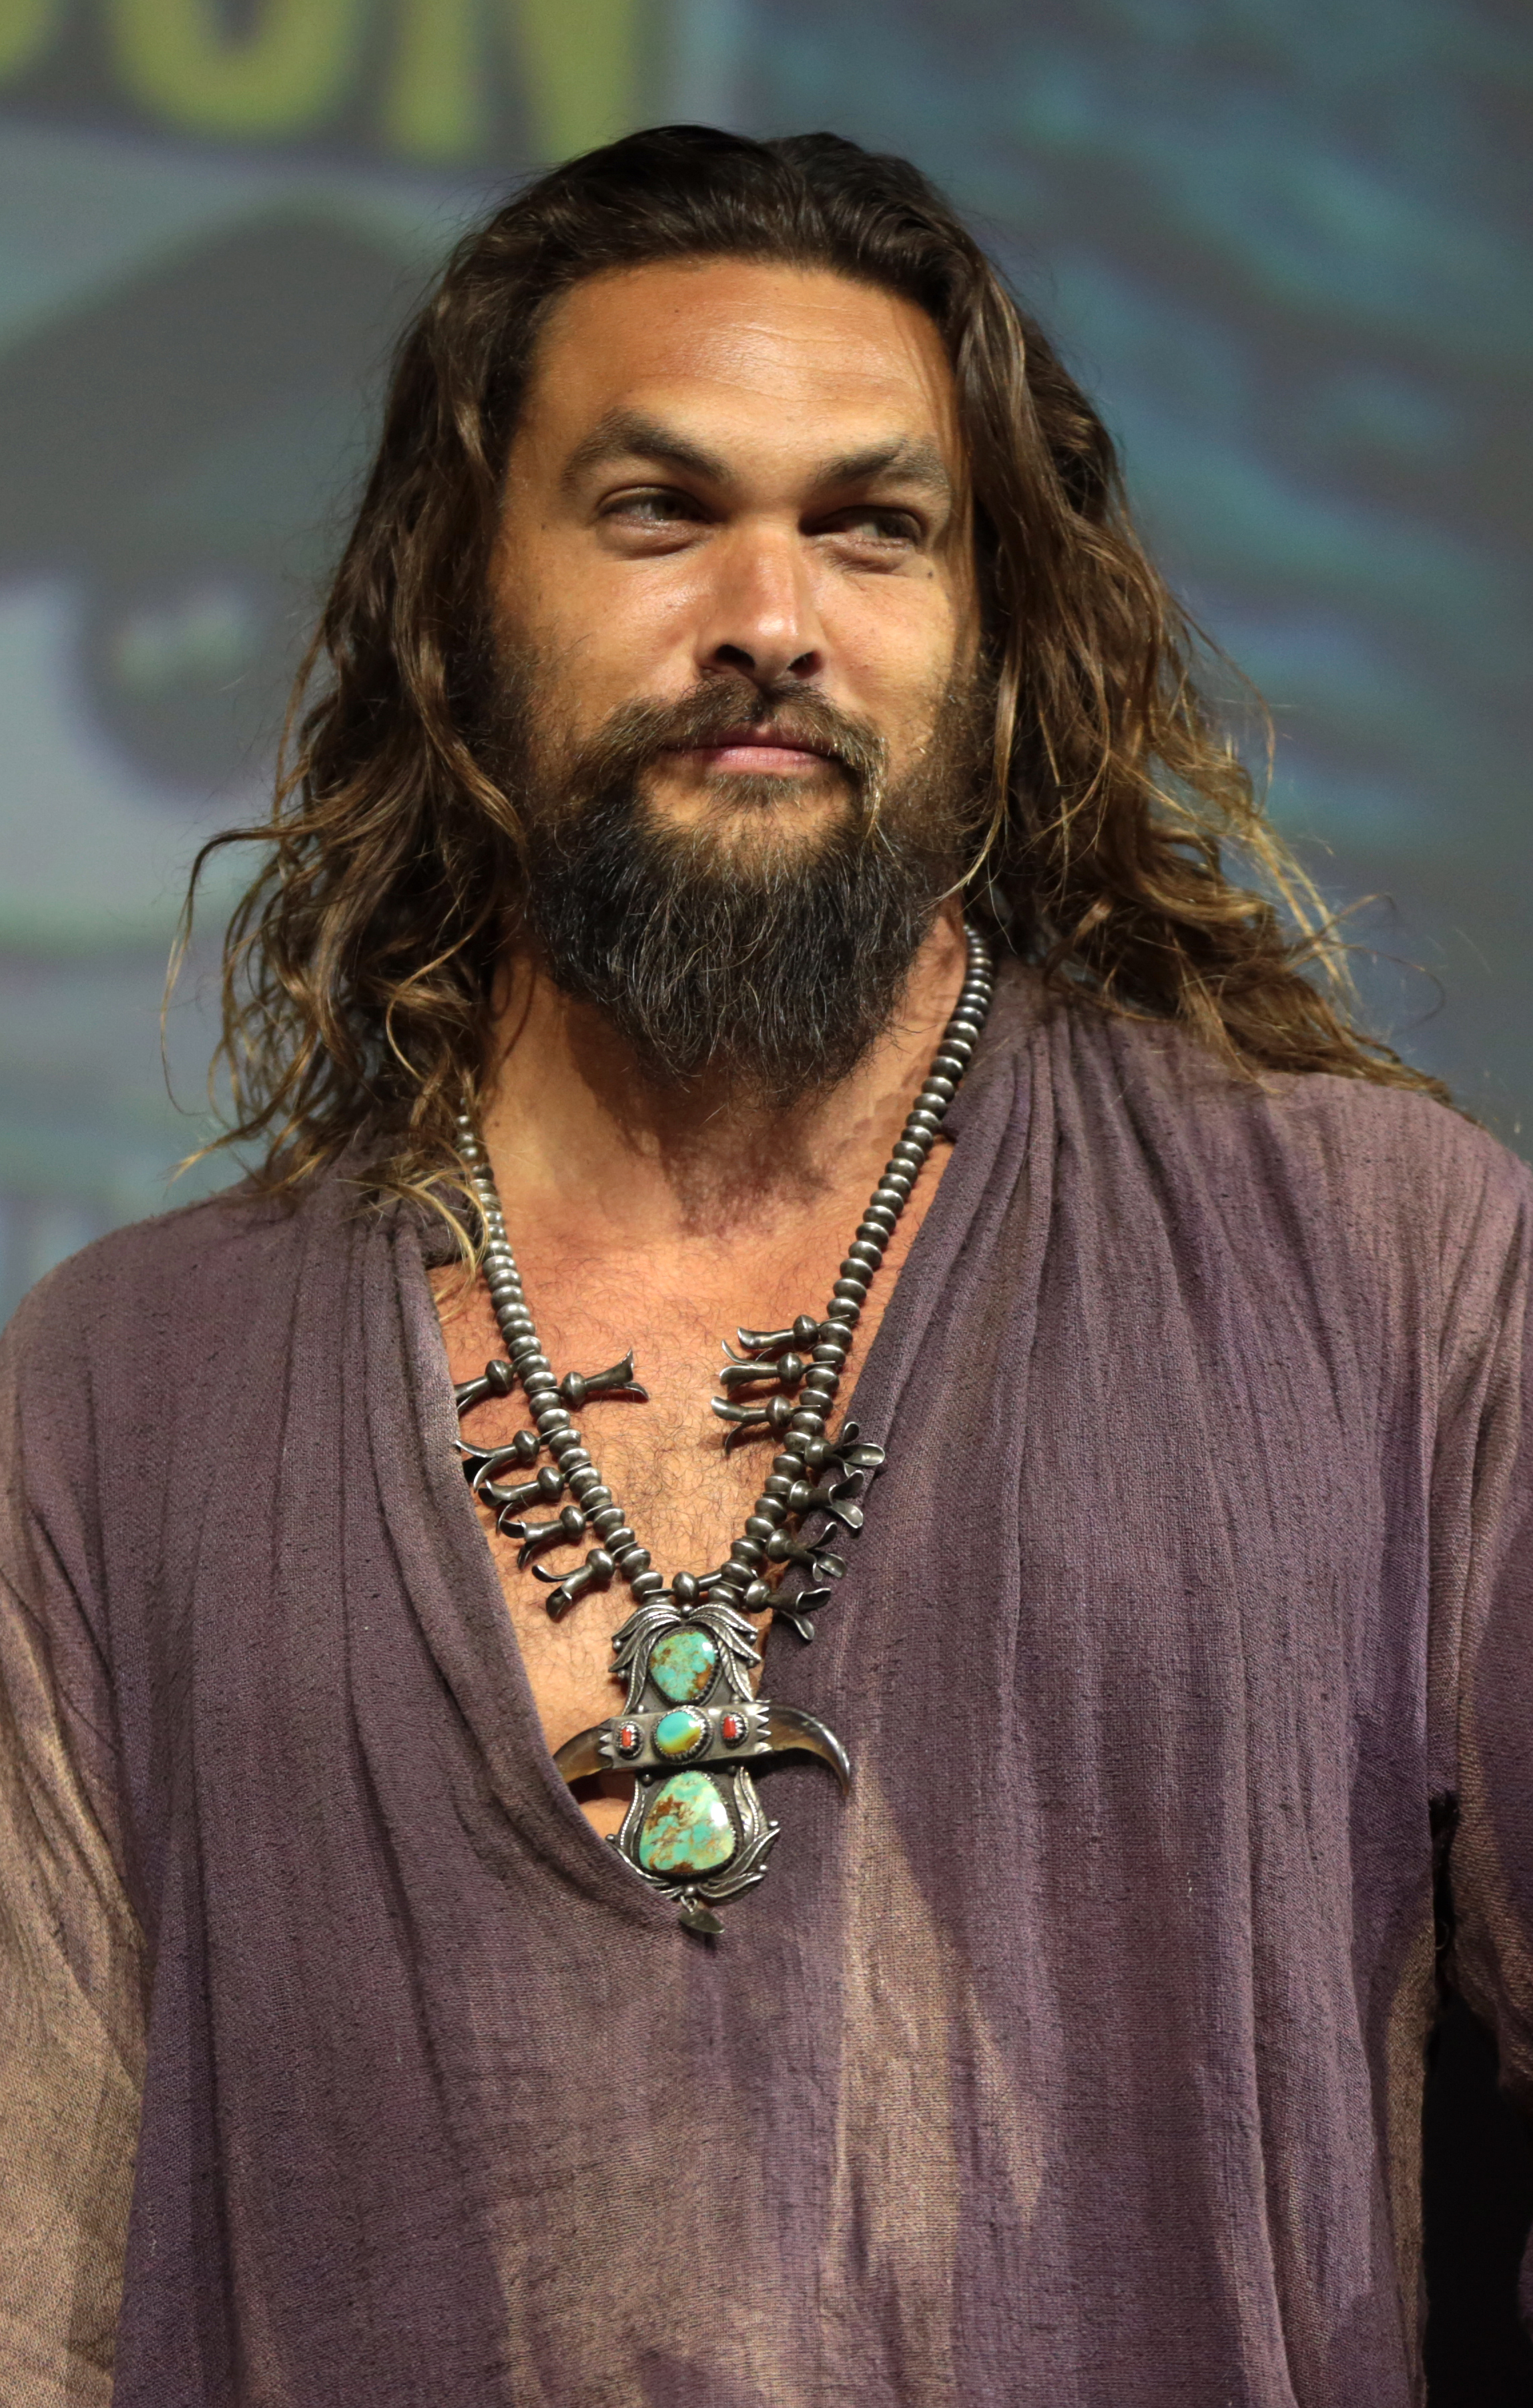 The 39-year old son of father  Joseph Momoa and mother Coni Momoa Jason Momoa in 2018 photo. Jason Momoa earned a  million dollar salary - leaving the net worth at 4 million in 2018